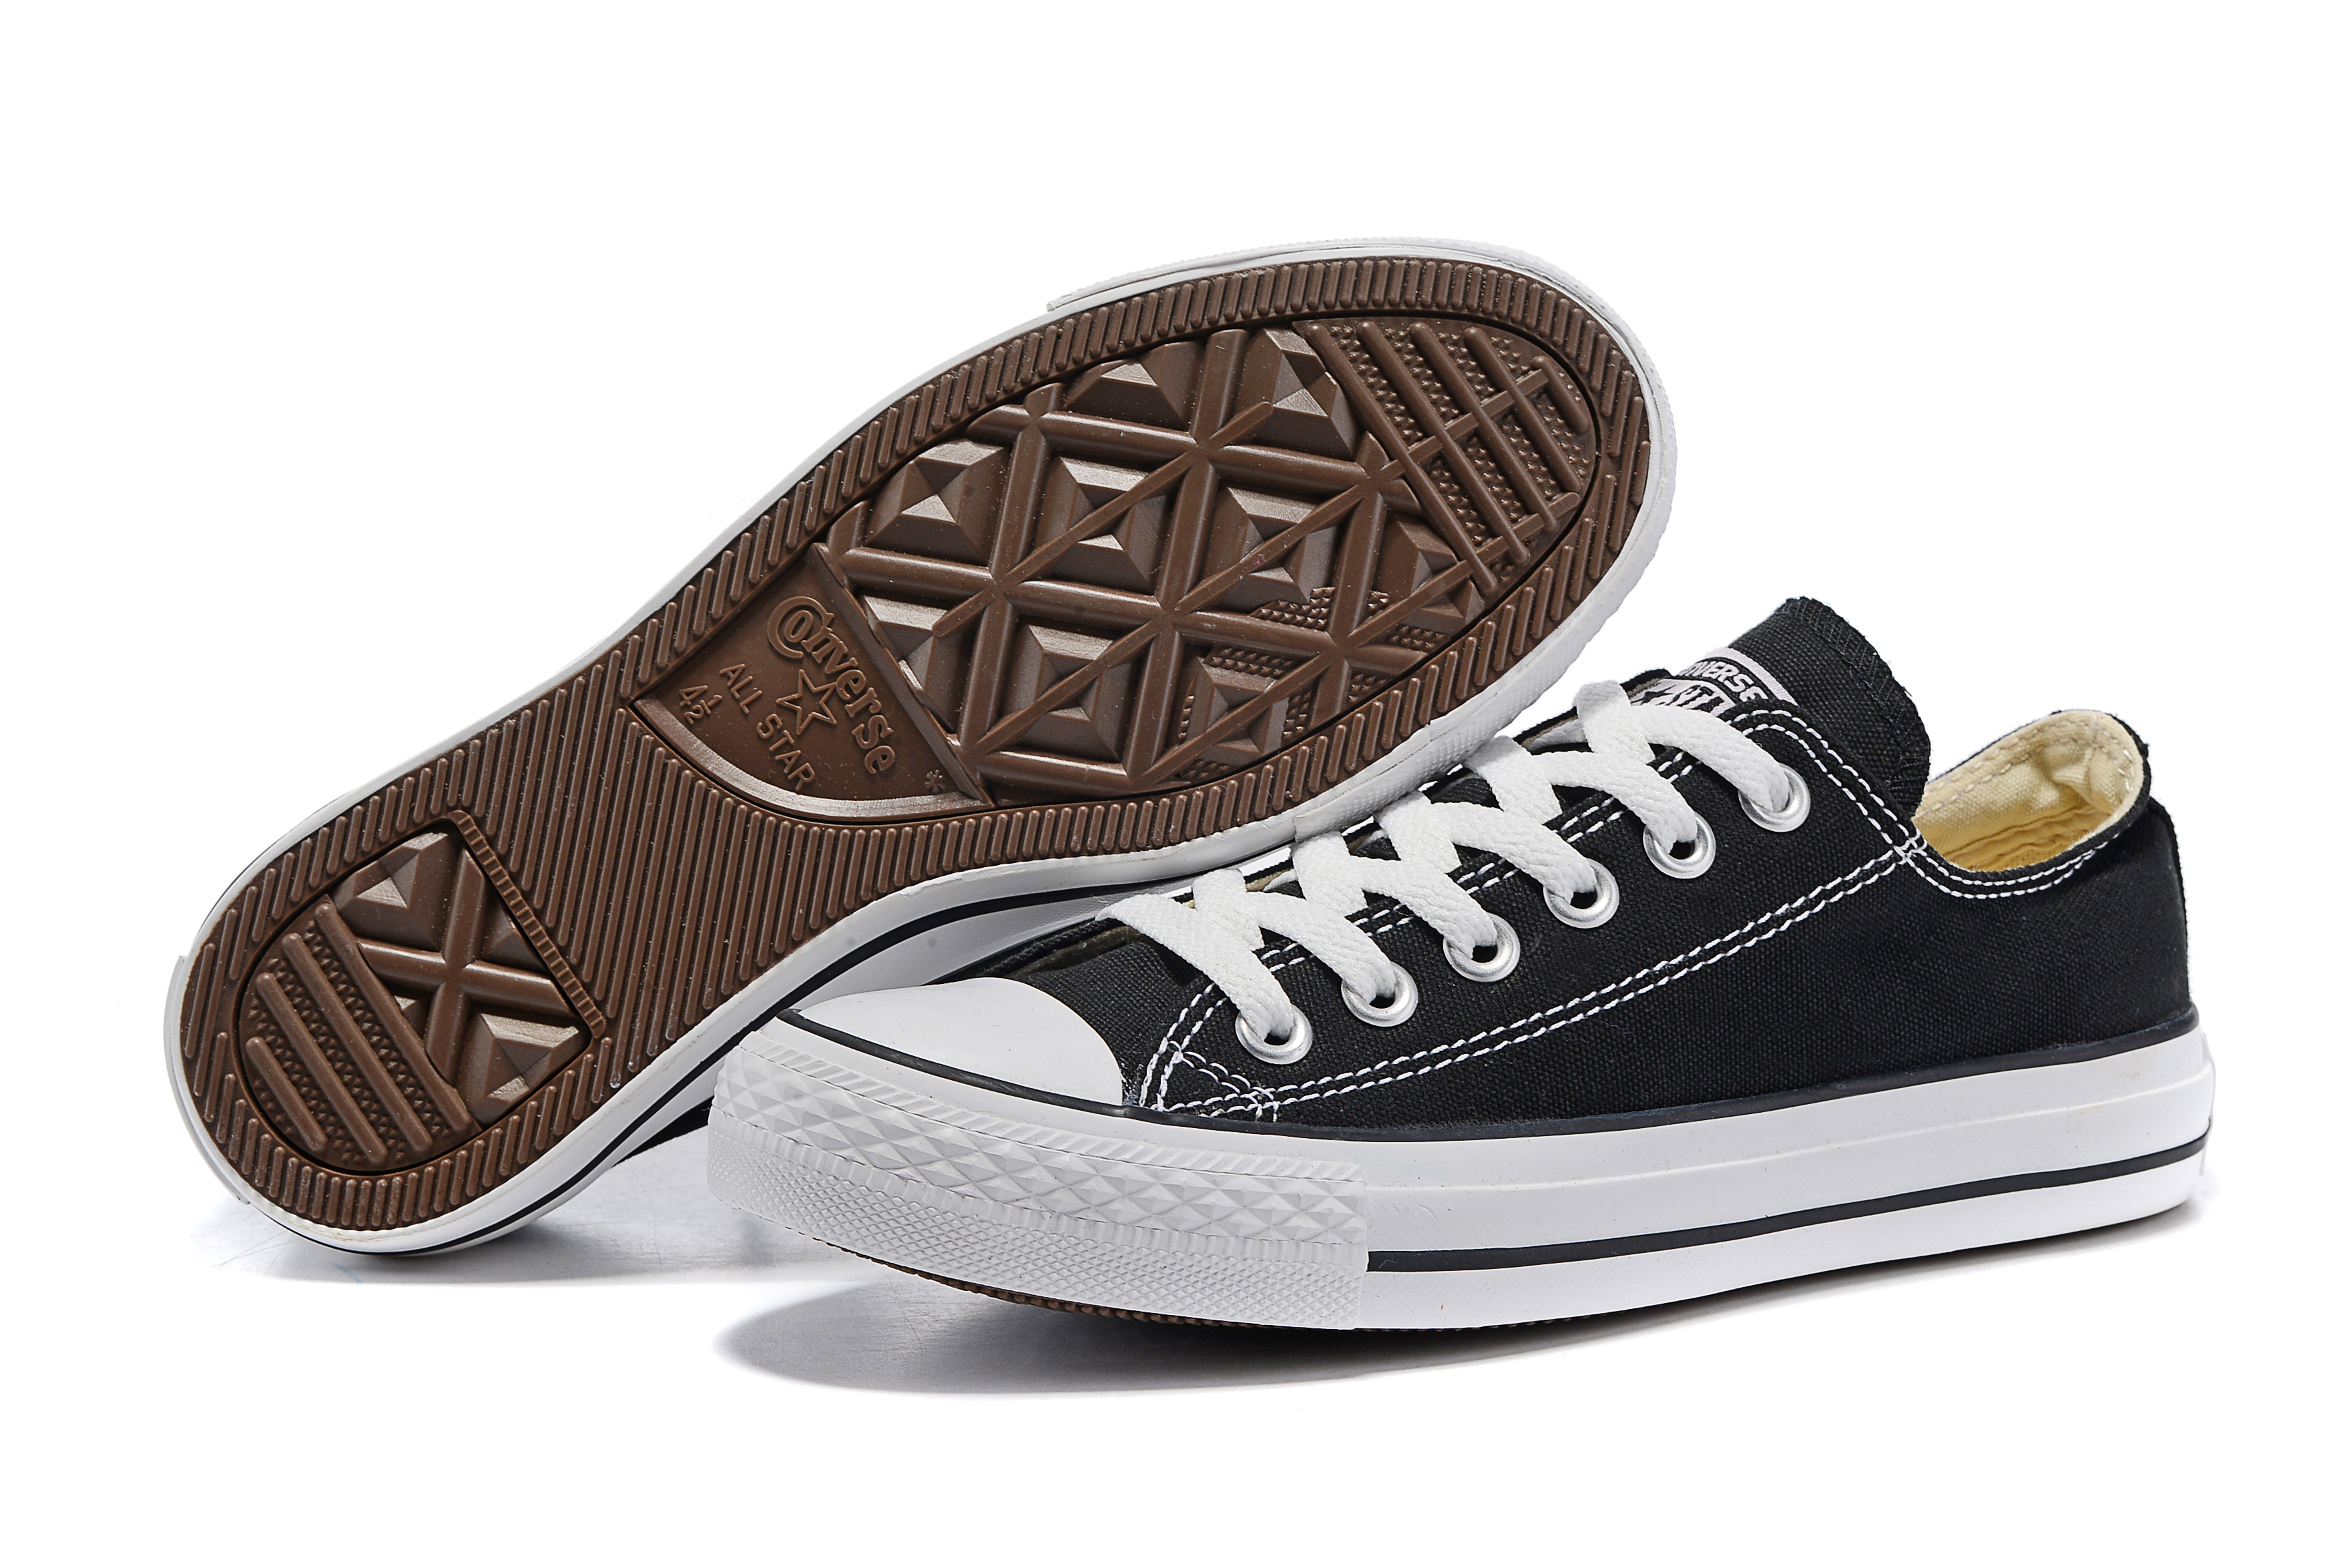 Converse all star classic canvas shoes men's and women's sneakers low Skateboarding Shoes(China)